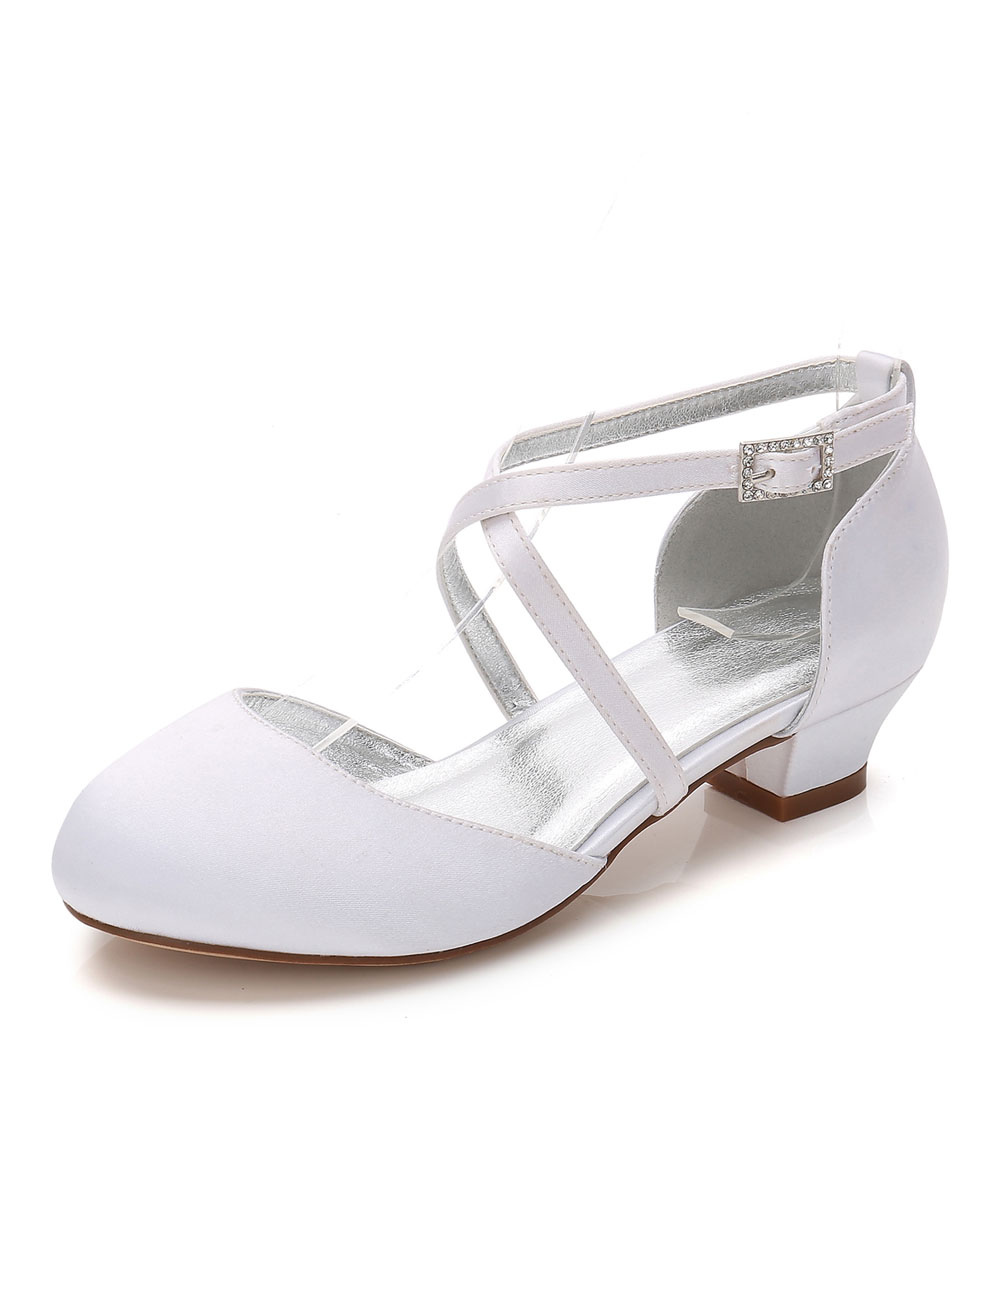 White Party Shoes Satin Wedding Flower Girl Shoes Round Toe Criss Cross Girl Shoes